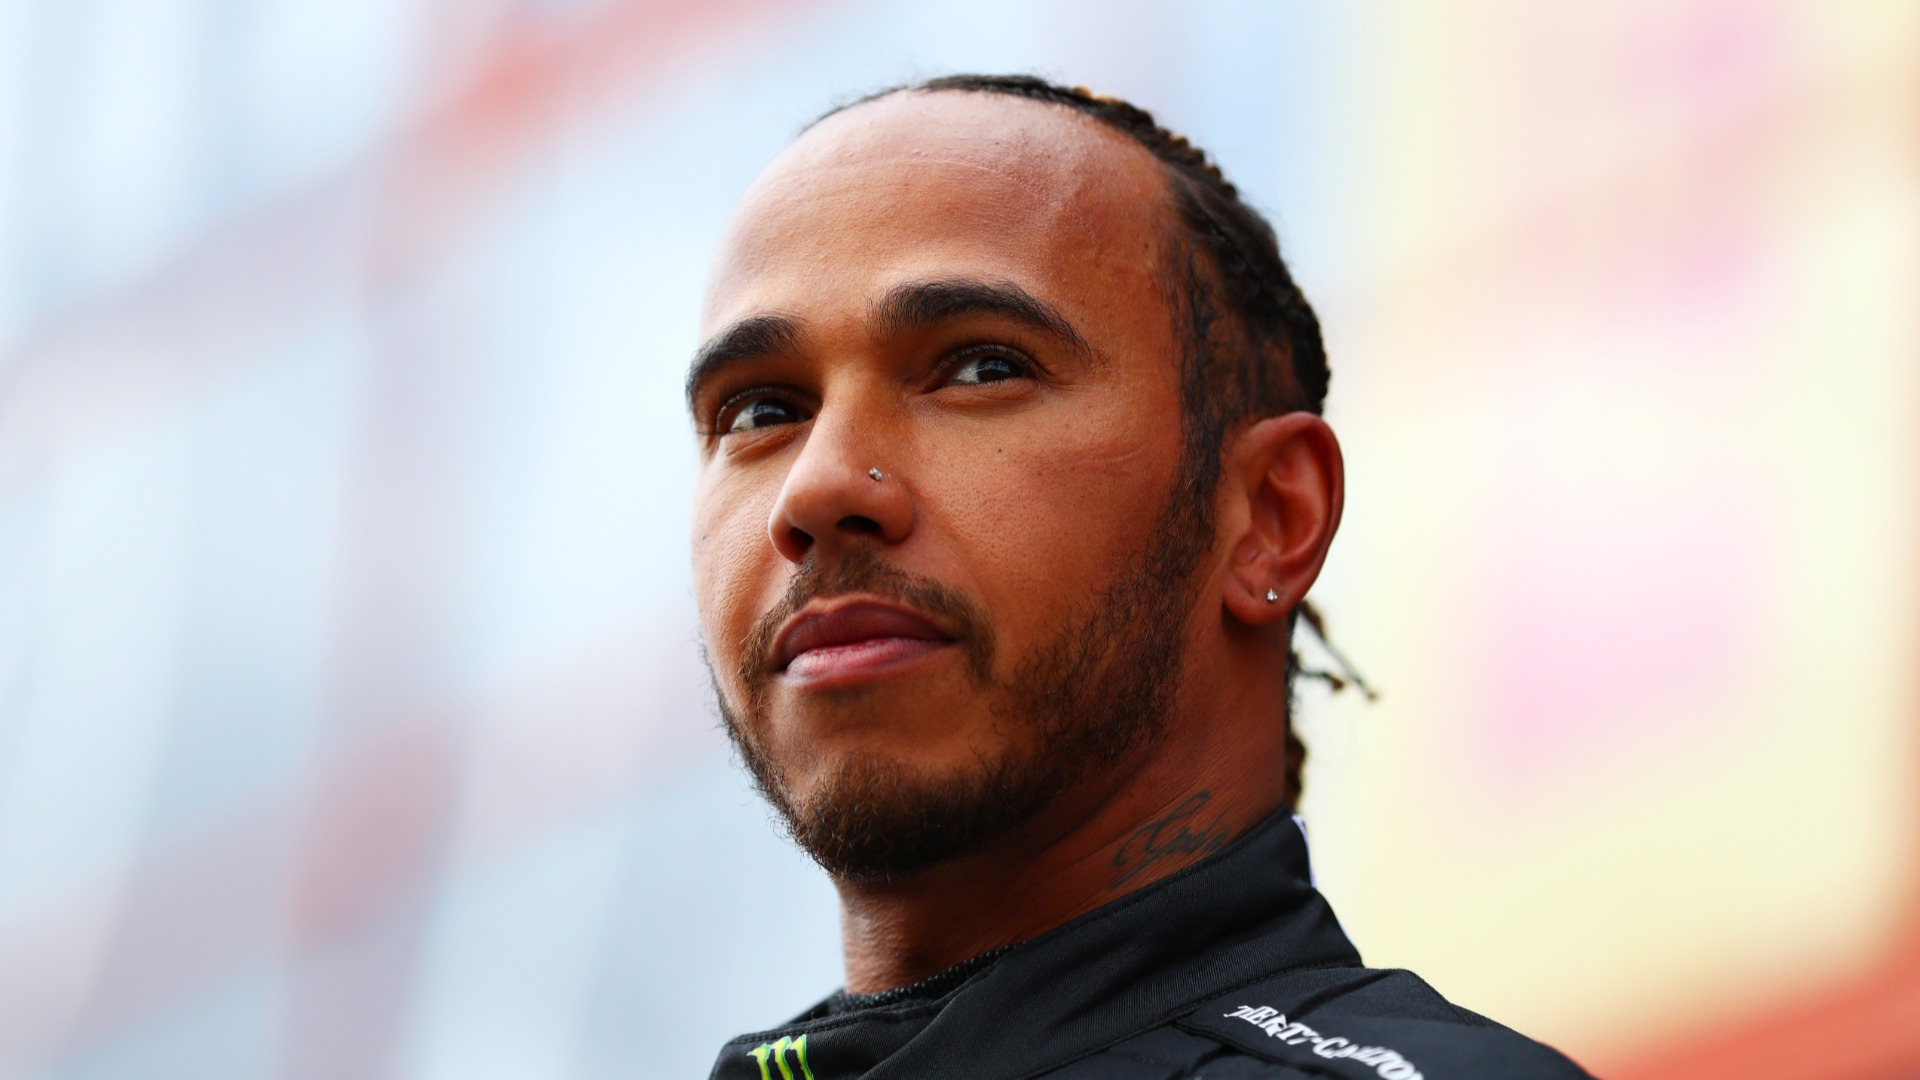 Hamilton expects Red Bull will make him work for Imola win